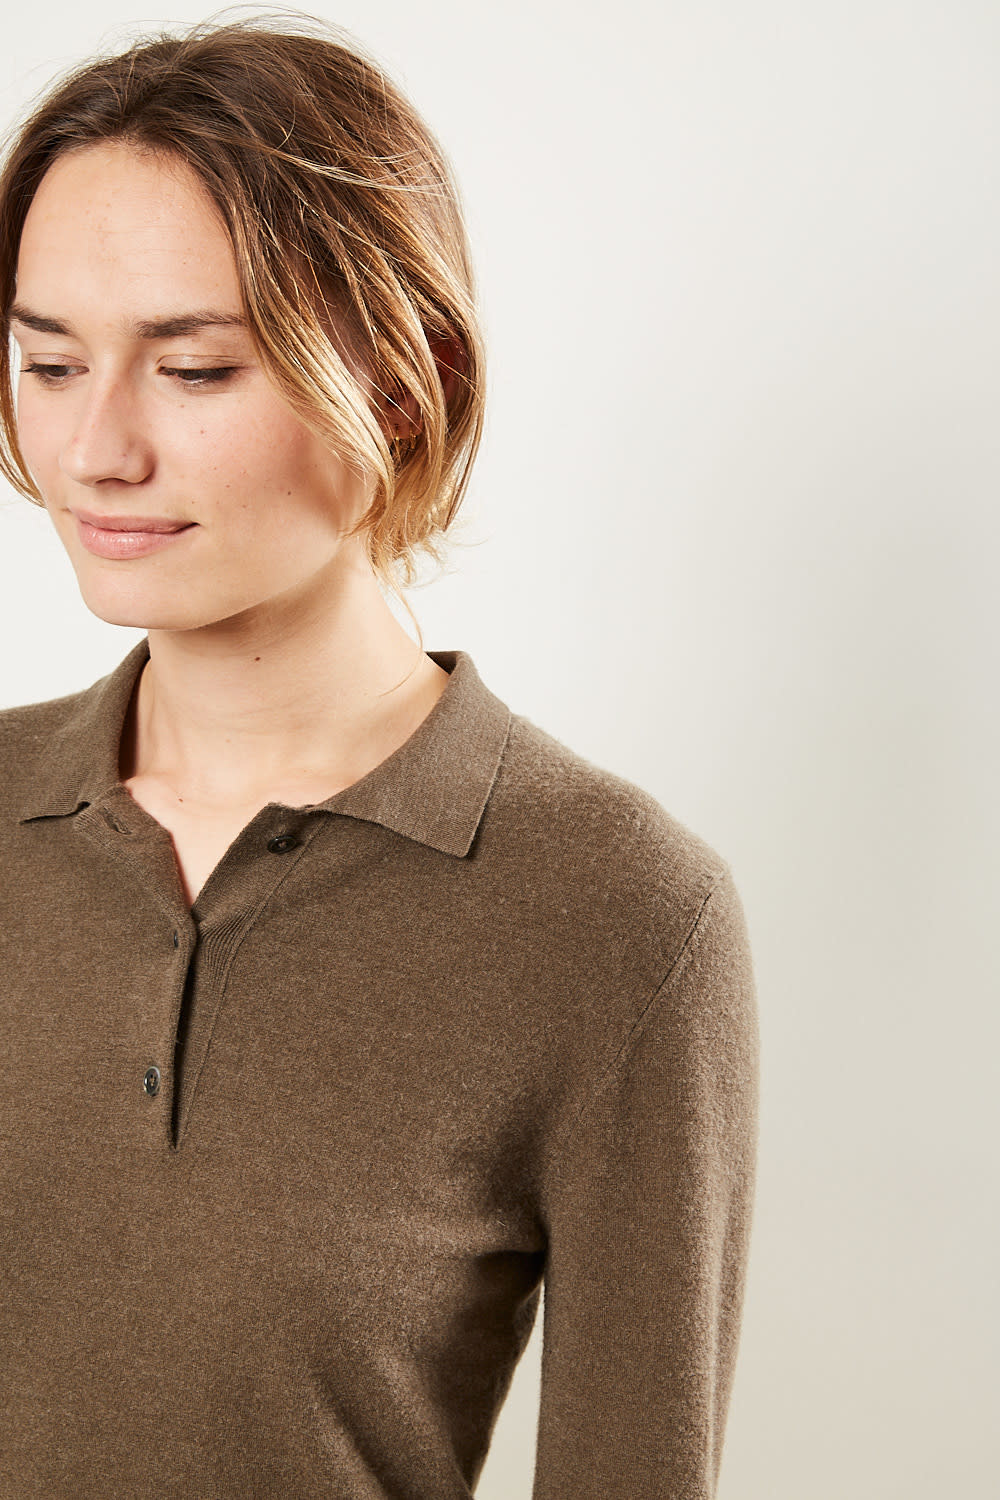 extreme cashmere - No121 rugby 2/60 long sleeve polo shirt brown